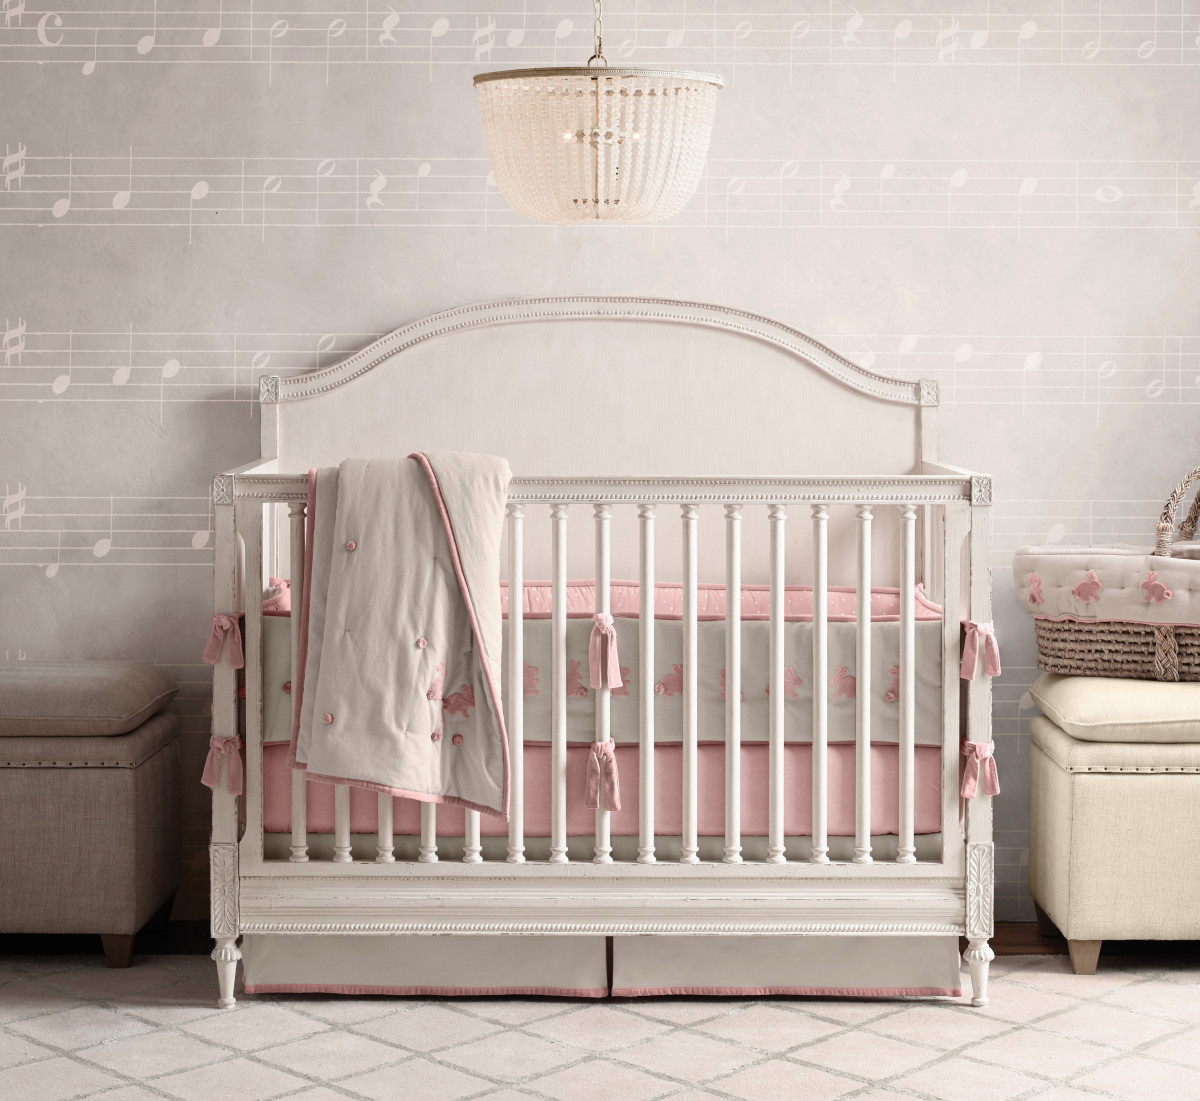 Restoration Hardware Cribs | Affordable Iron Crib | Bellini Bassinet